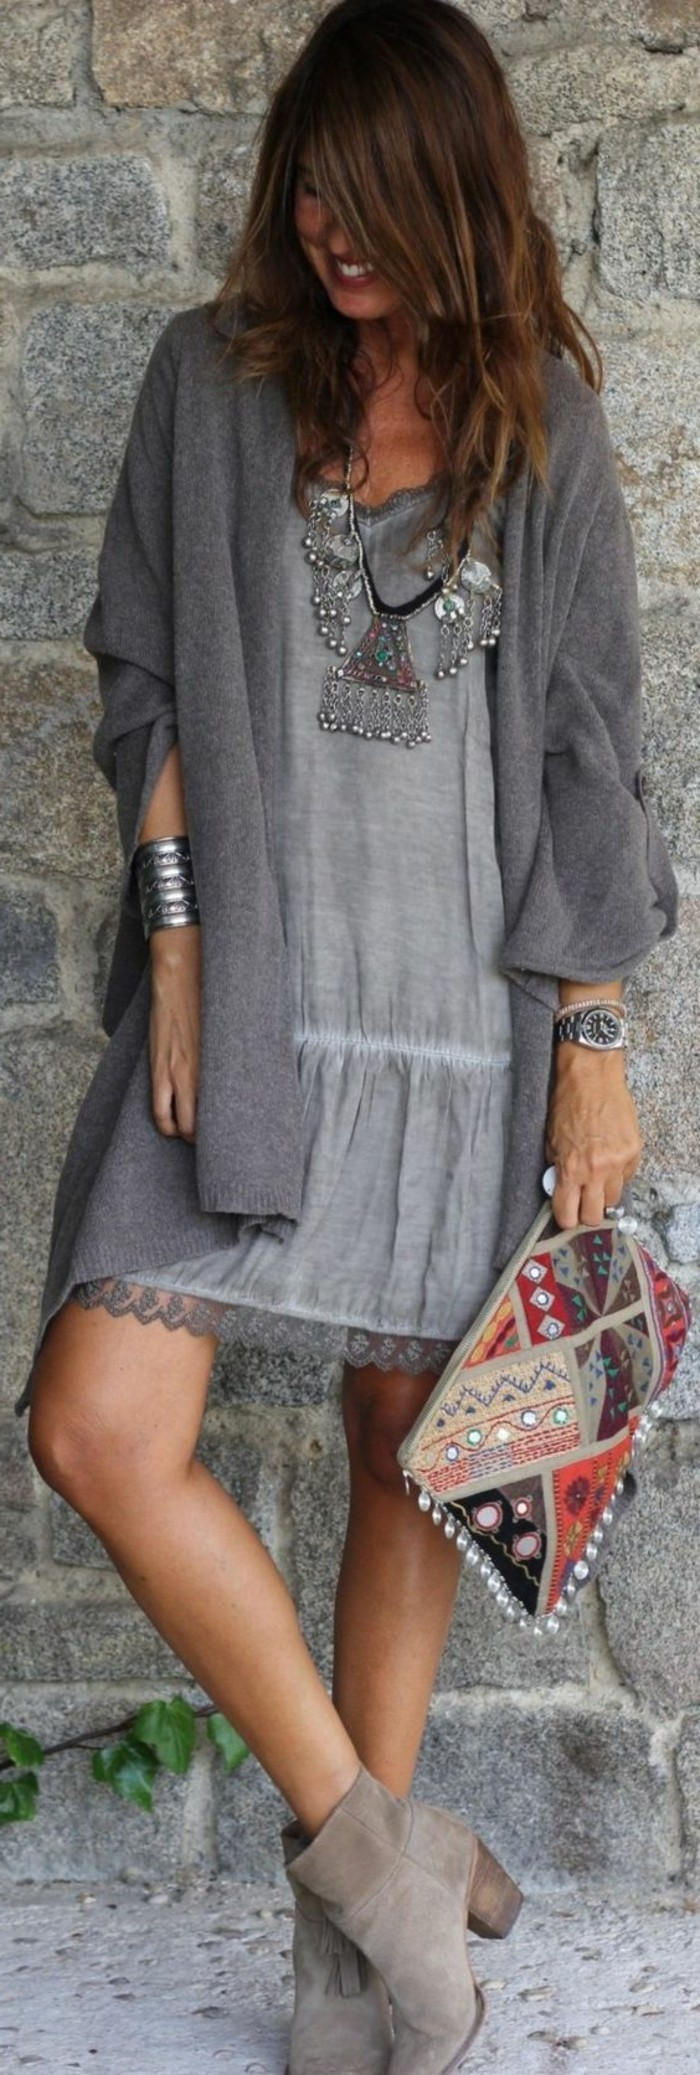 mode boheme, gilet gris long, robe boho chic